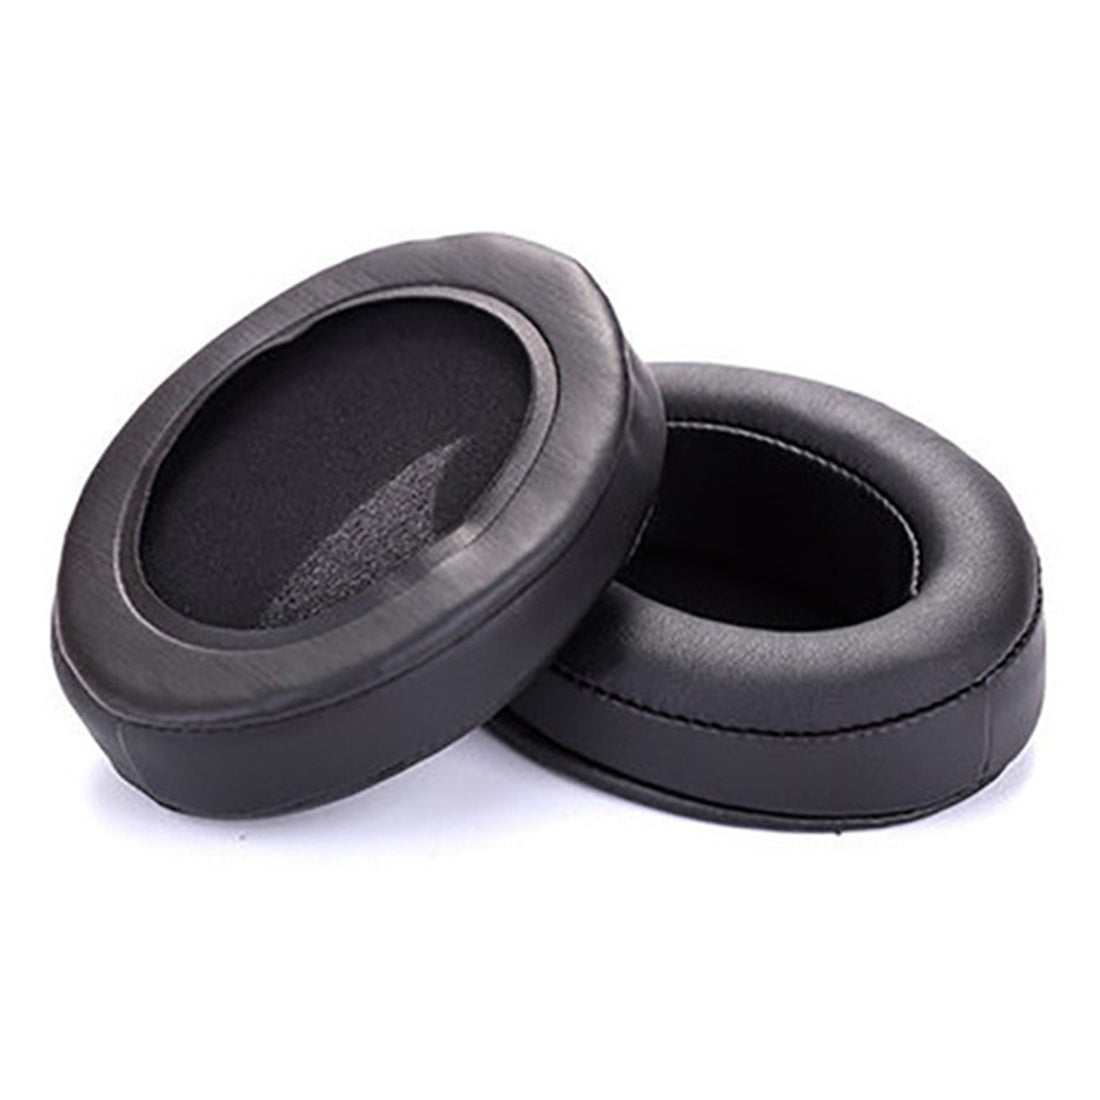 1 Pair Oval Leather Beveled Headphone Protective Case for Brainwavz HM5 / Philip SHP9500(Black)